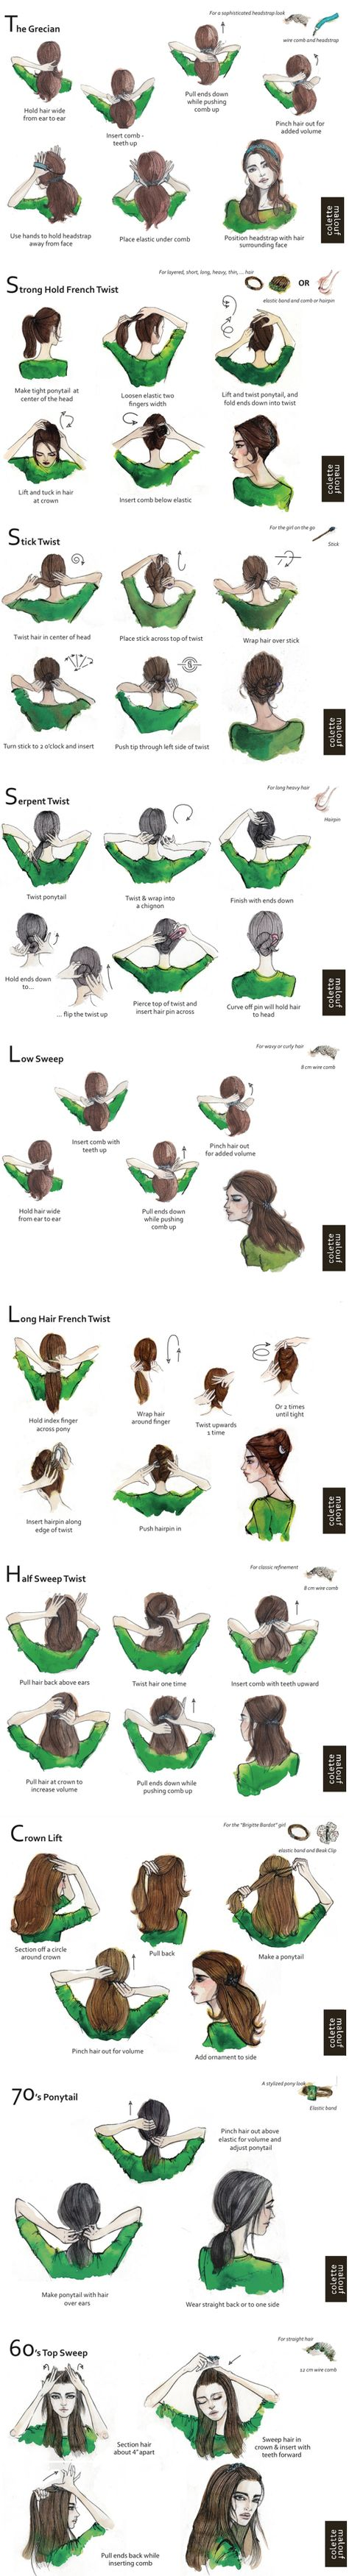 10 summer hairstyles - gorgeous illustrations